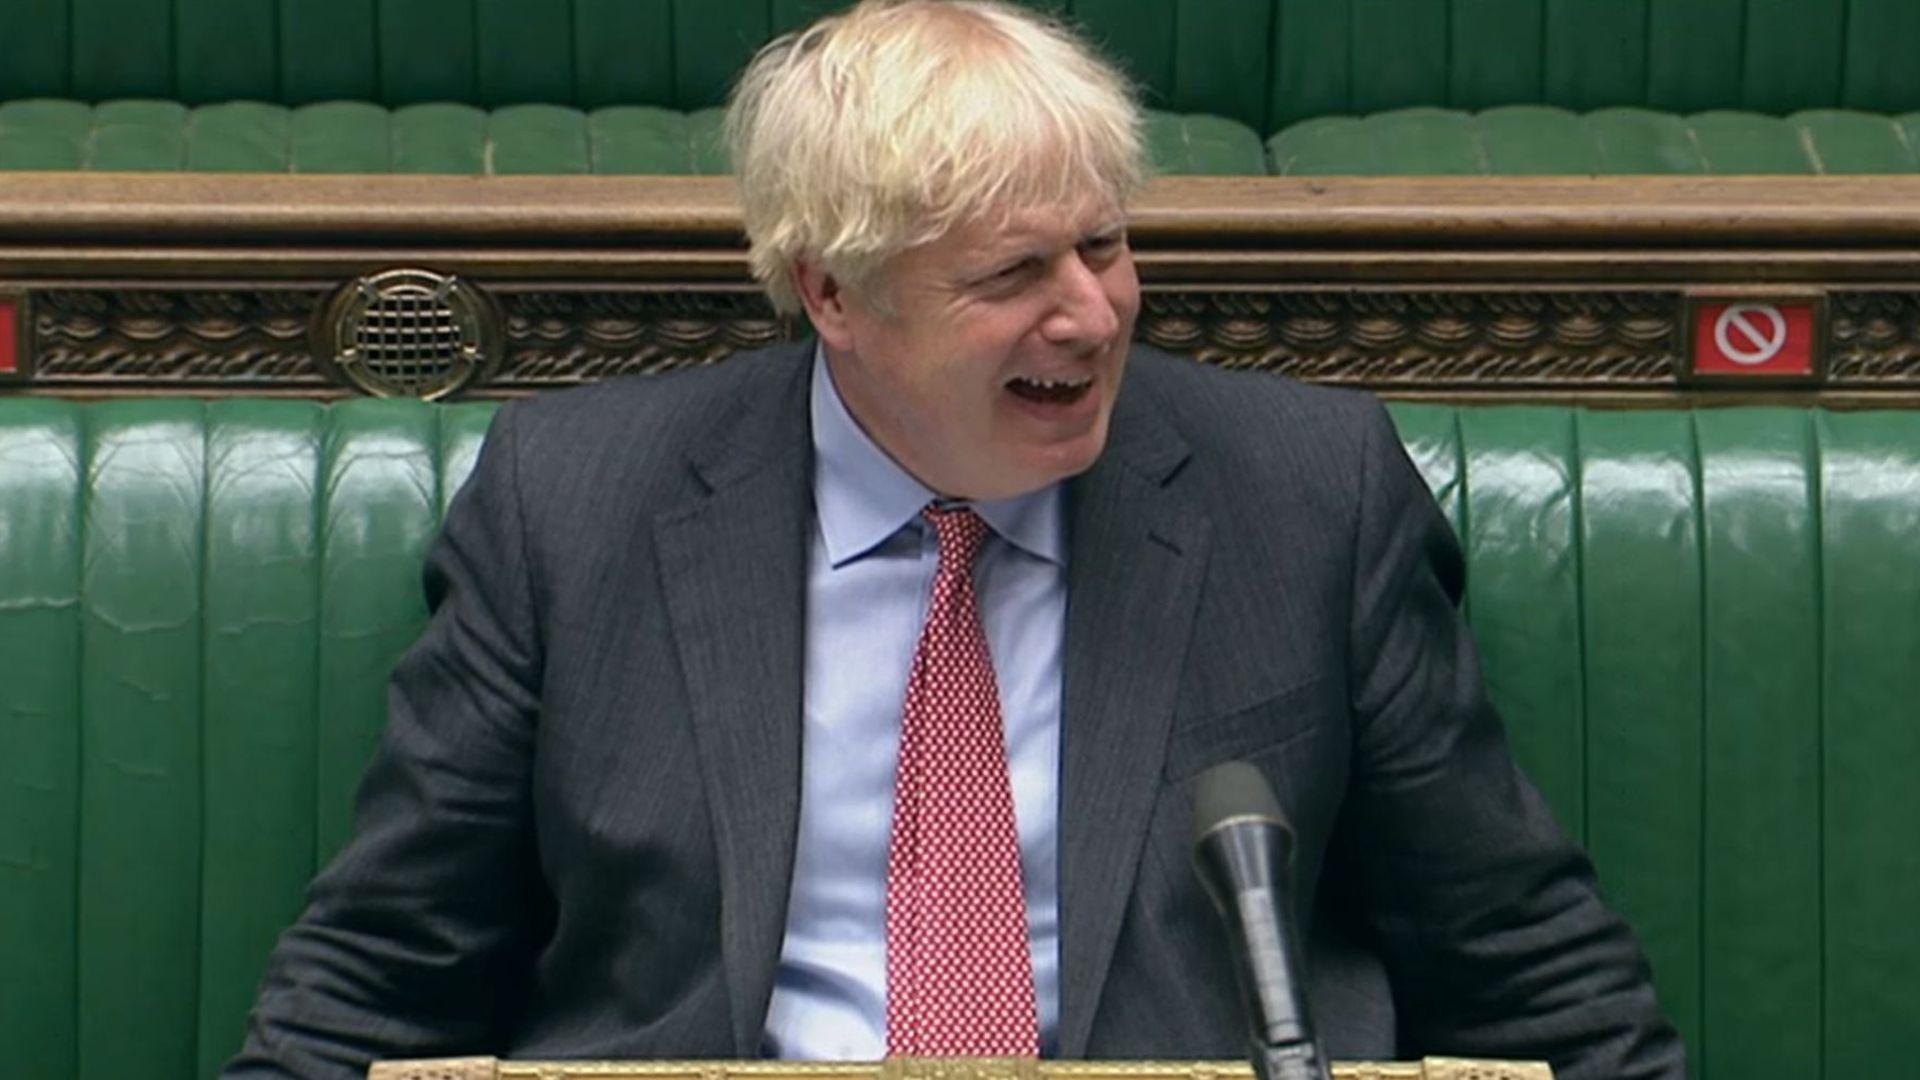 Prime Minister Boris Johnson during Prime Minister's Questions in the House of Commons, London. - Credit: PA